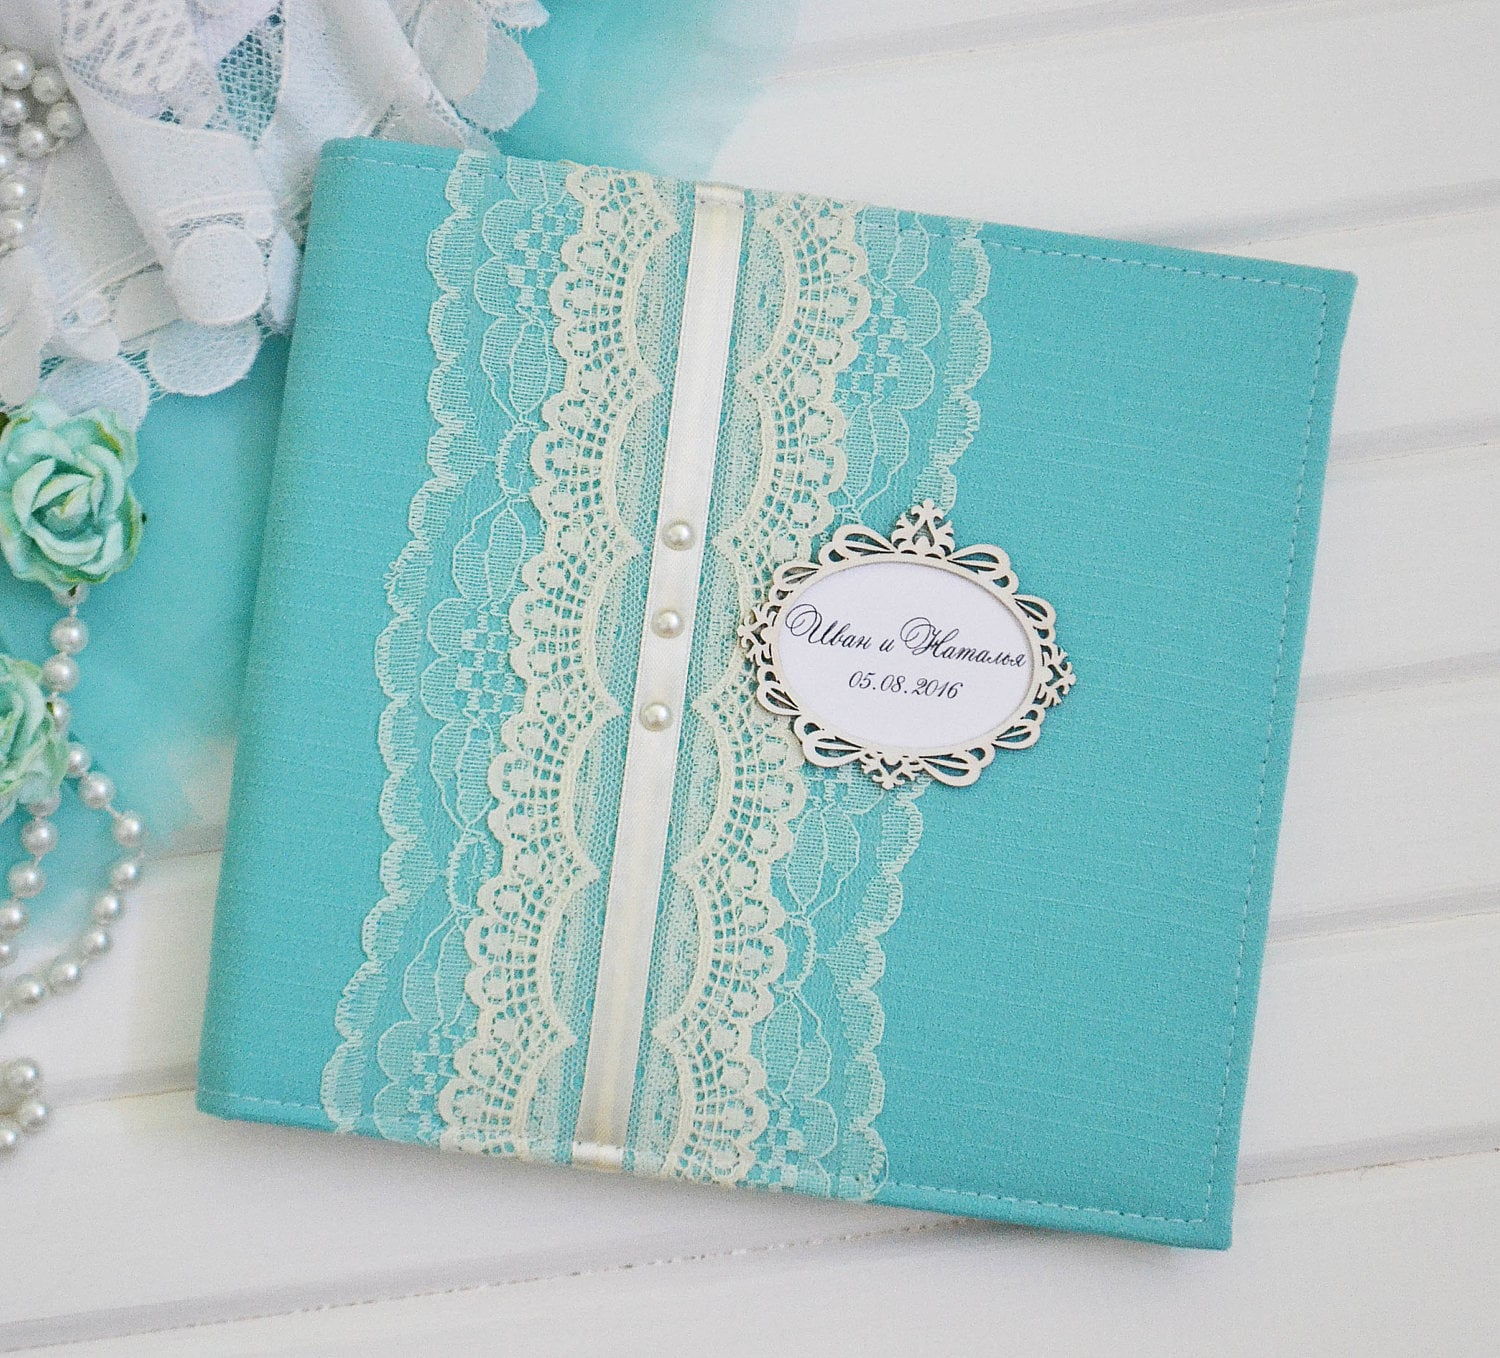 Wedding Photo Books Uk: Tiffany Blue Photo Album Instax Wedding Guest Book